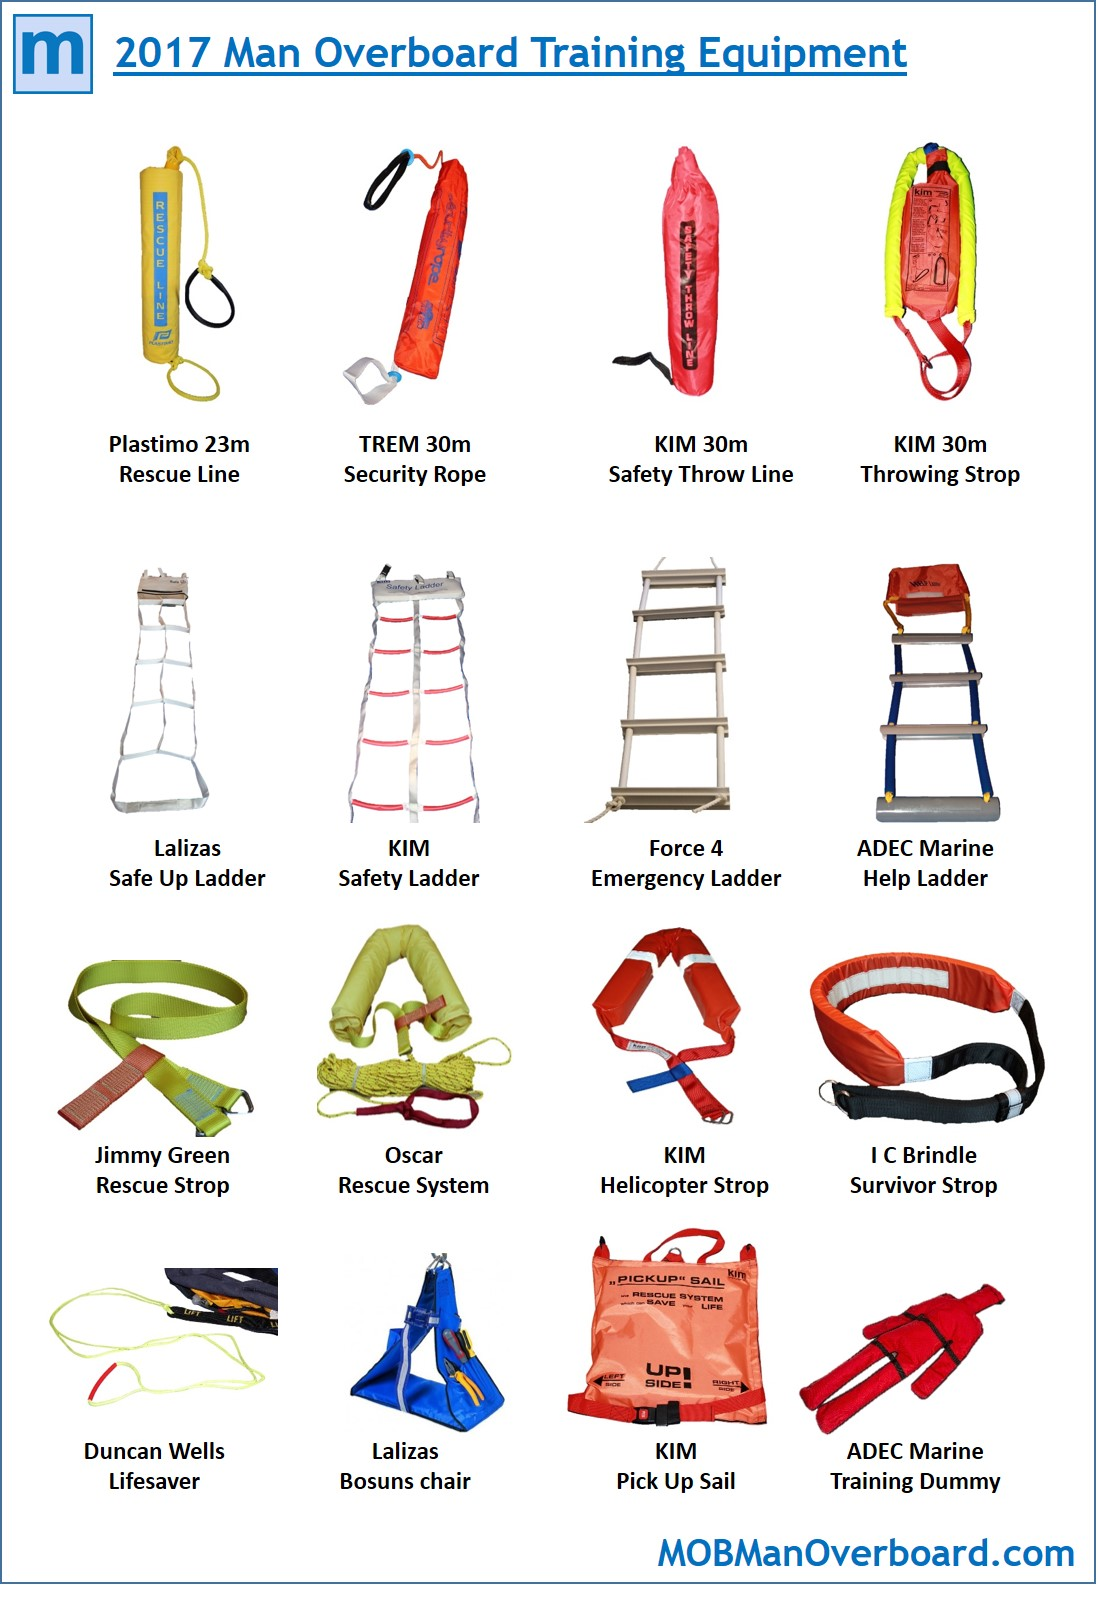 Picture showing all the Man Overboard Rescue Procedure and Recovery Drill equipment.